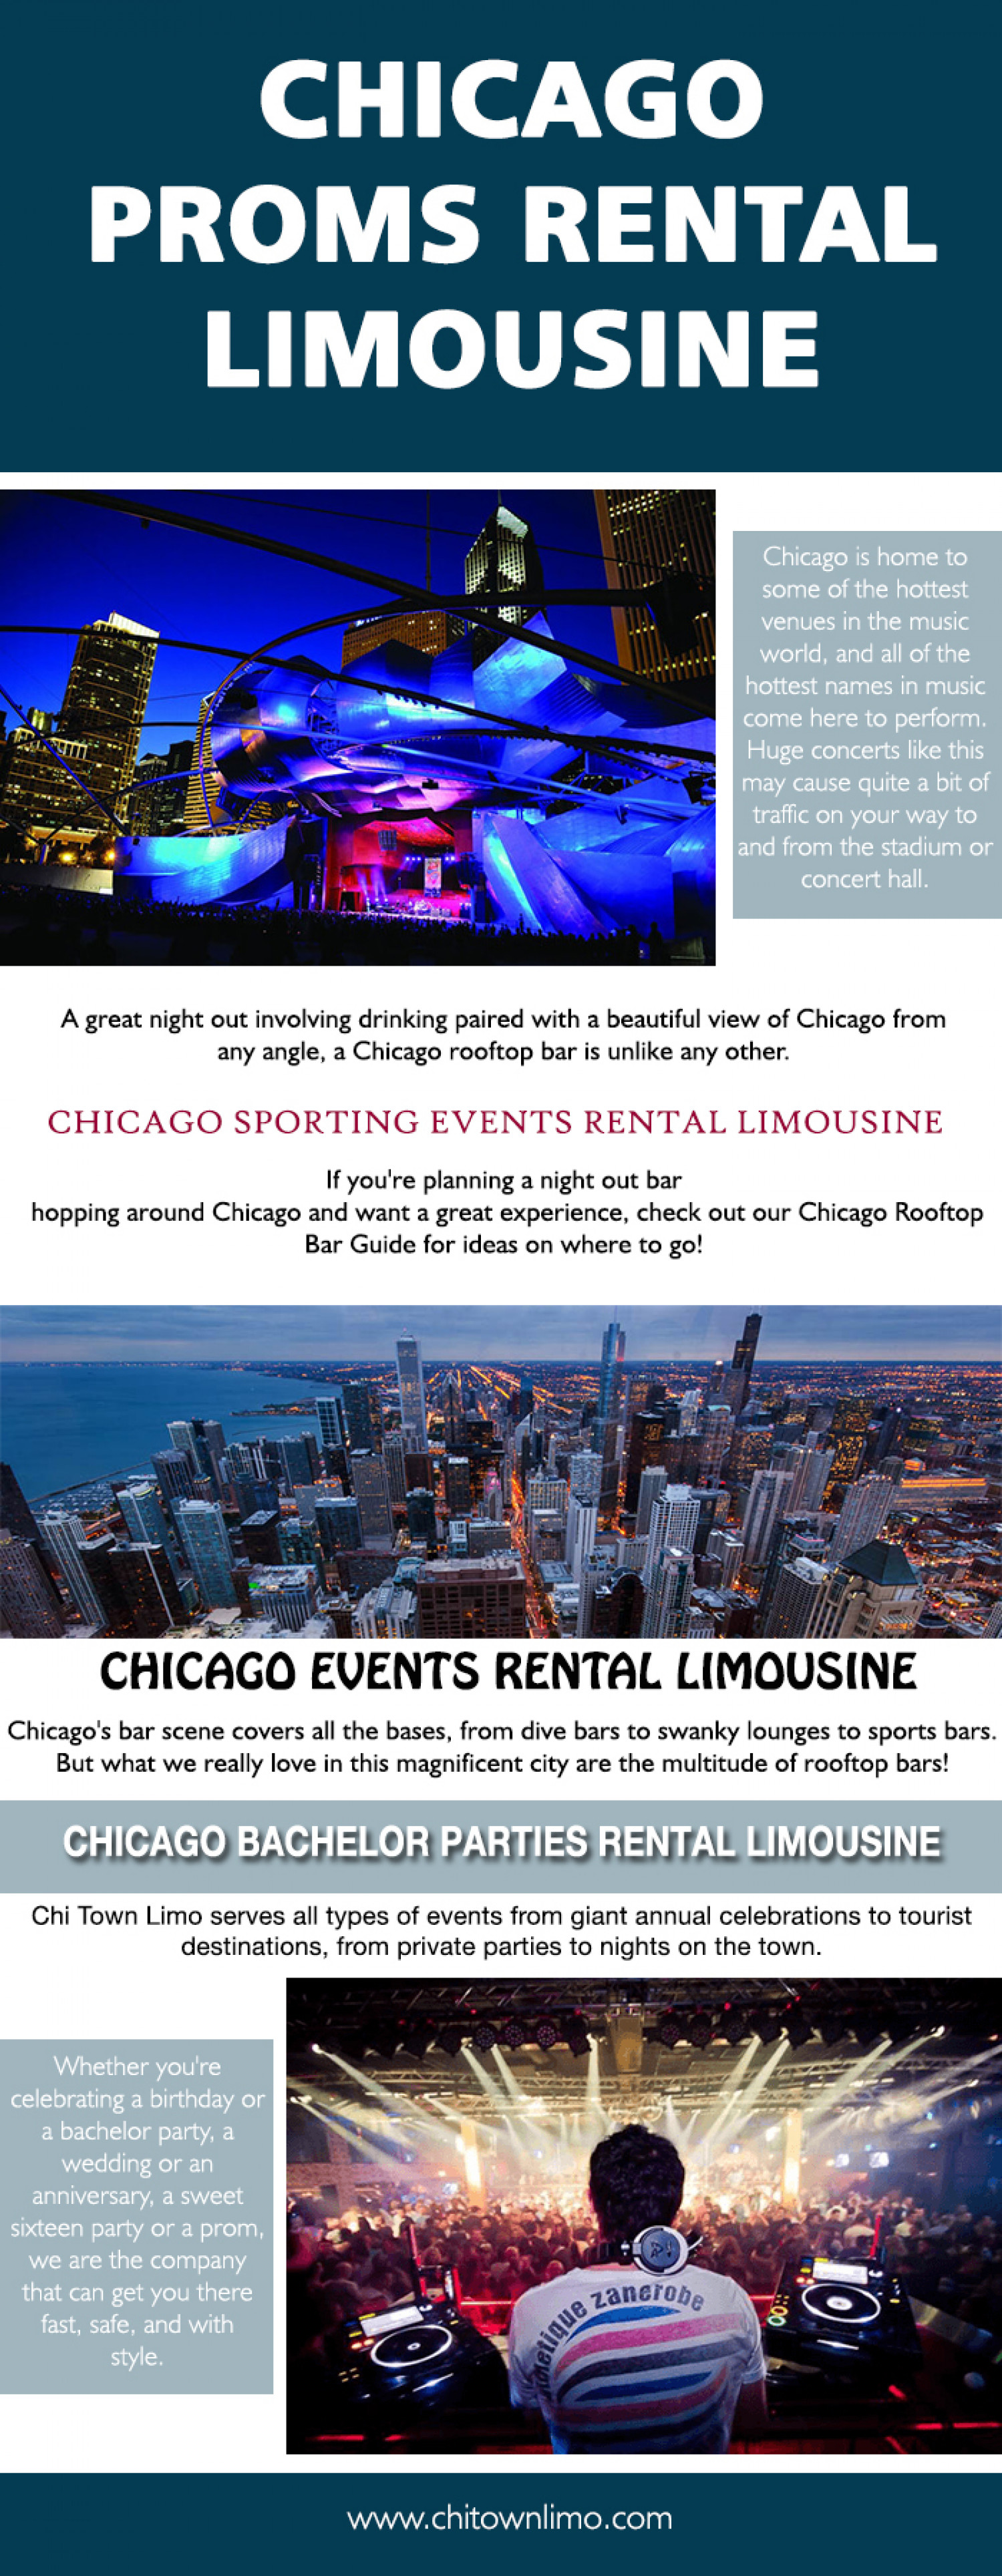 Chicago Events Rental Limousine